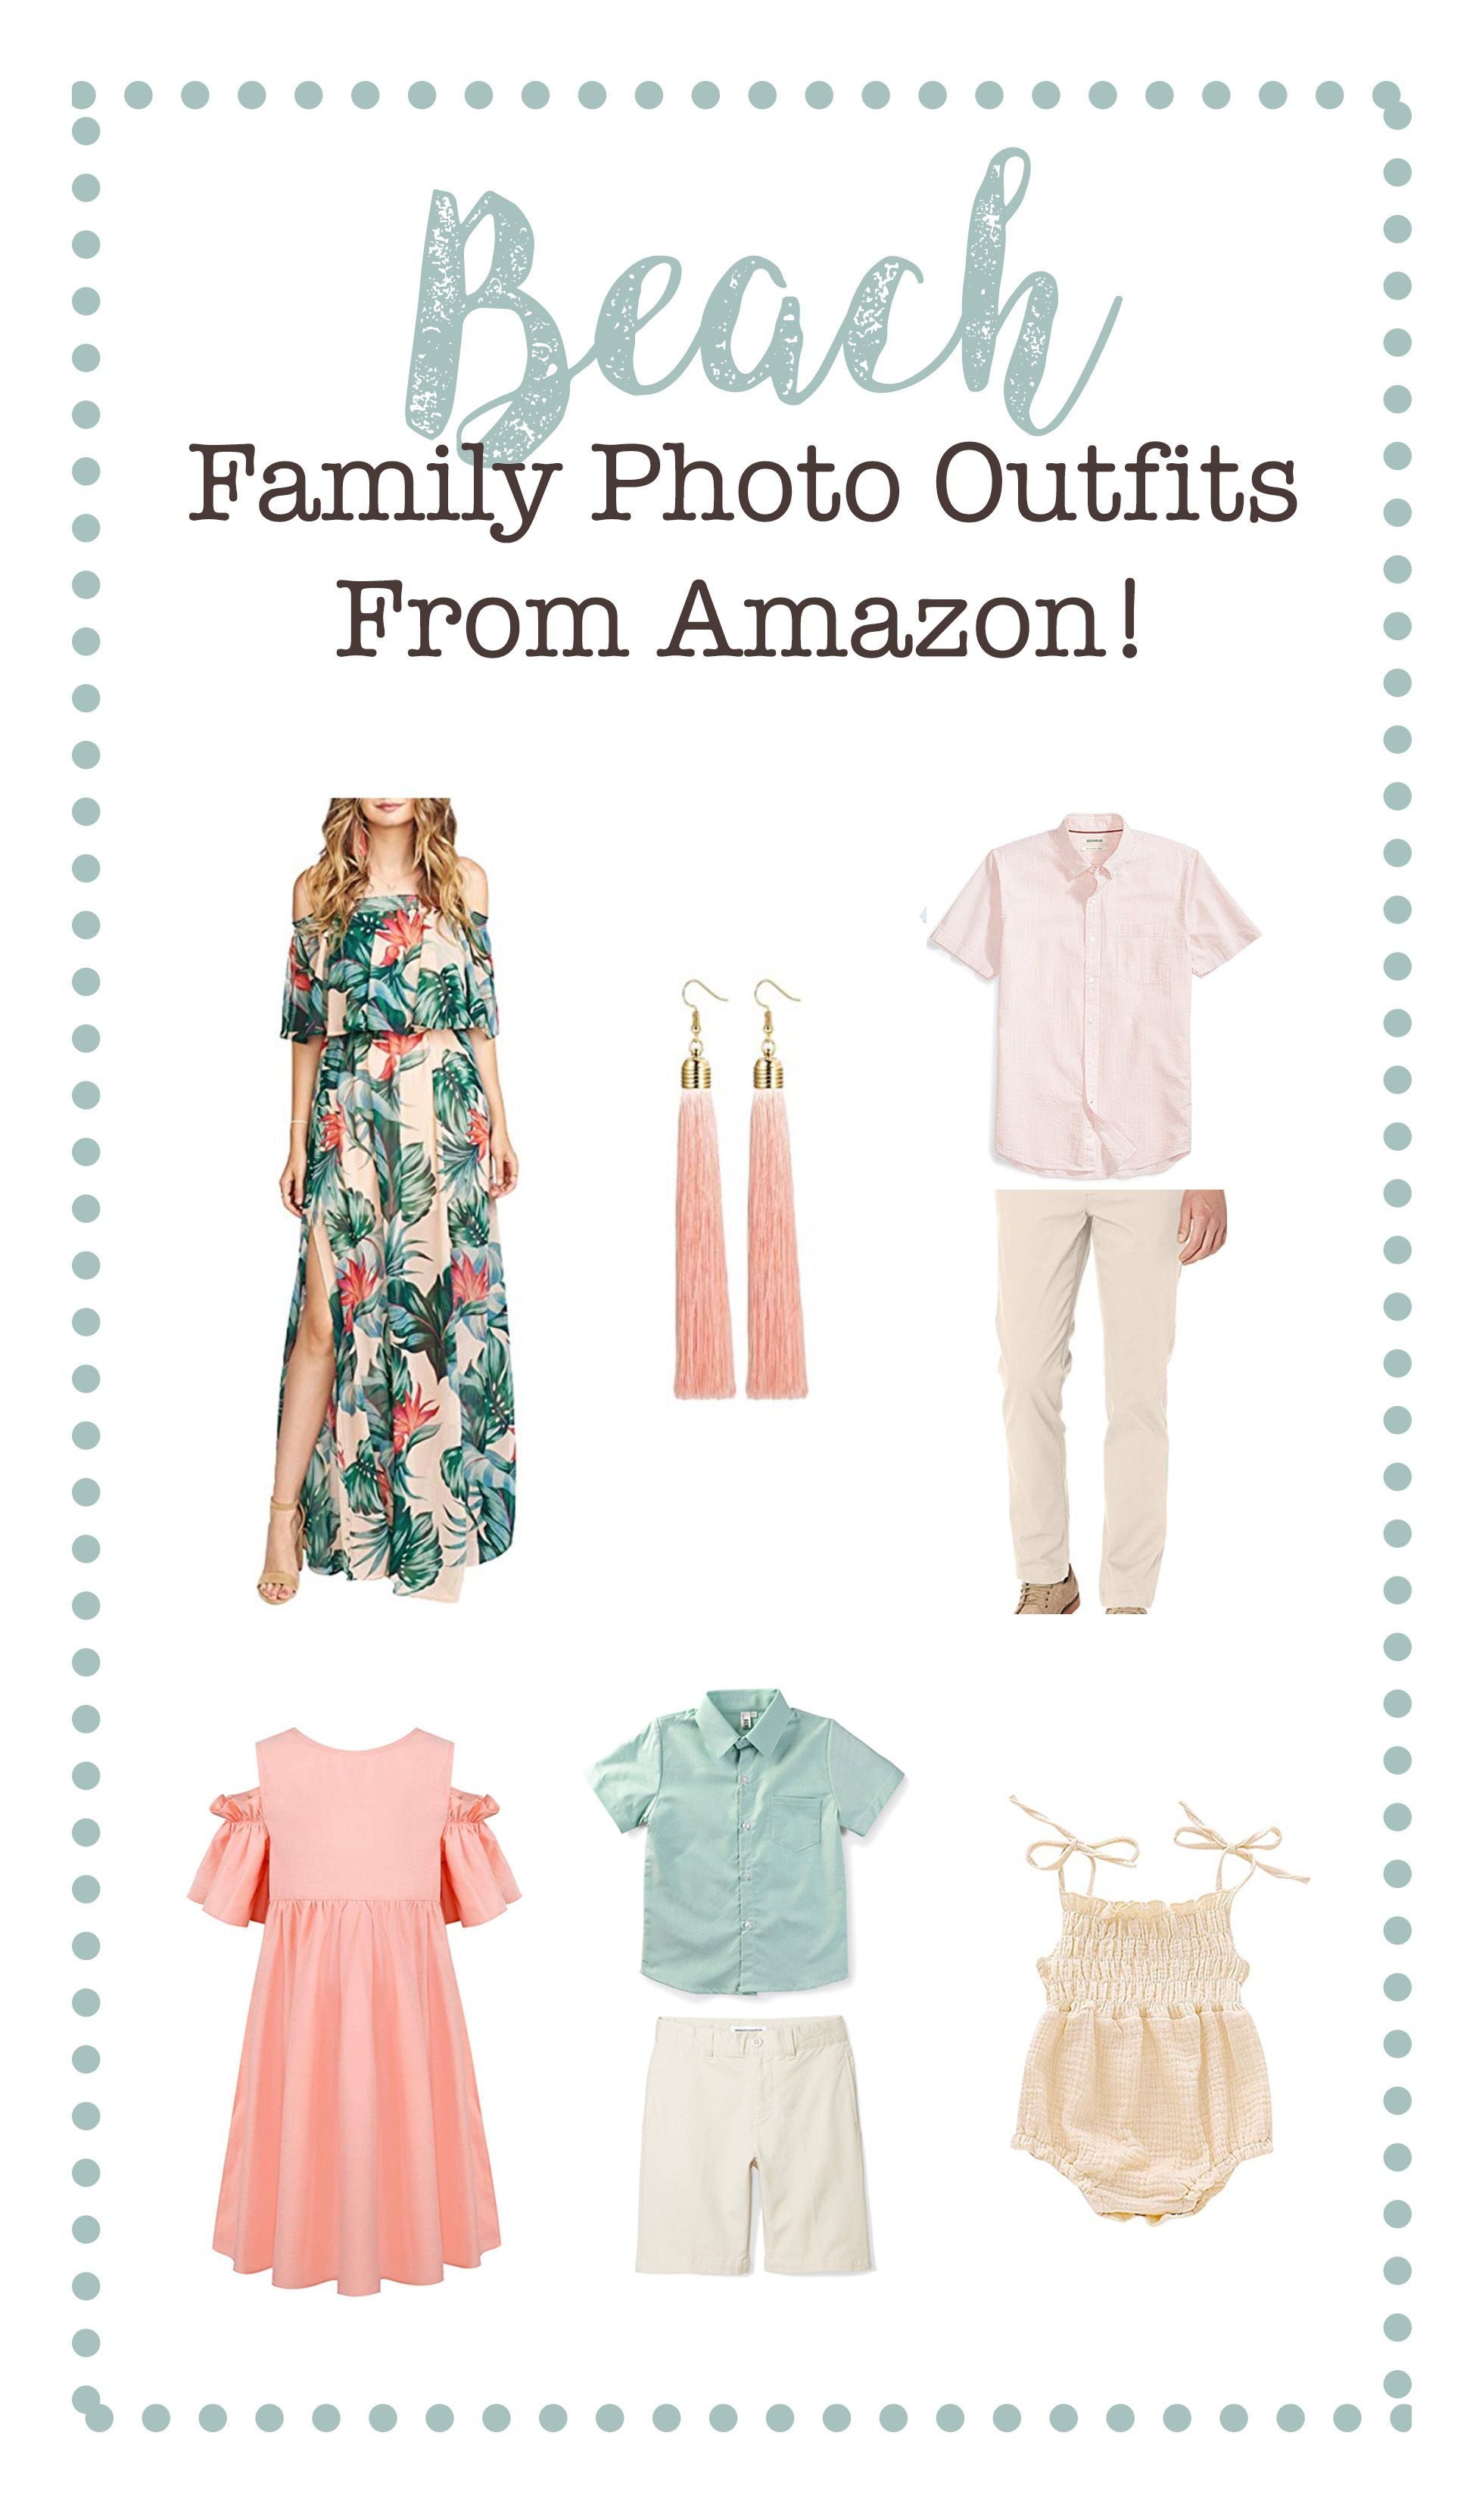 Beach Family Photo Outfits from Amazon! | Affordable Photography Props #familyphotooutfits